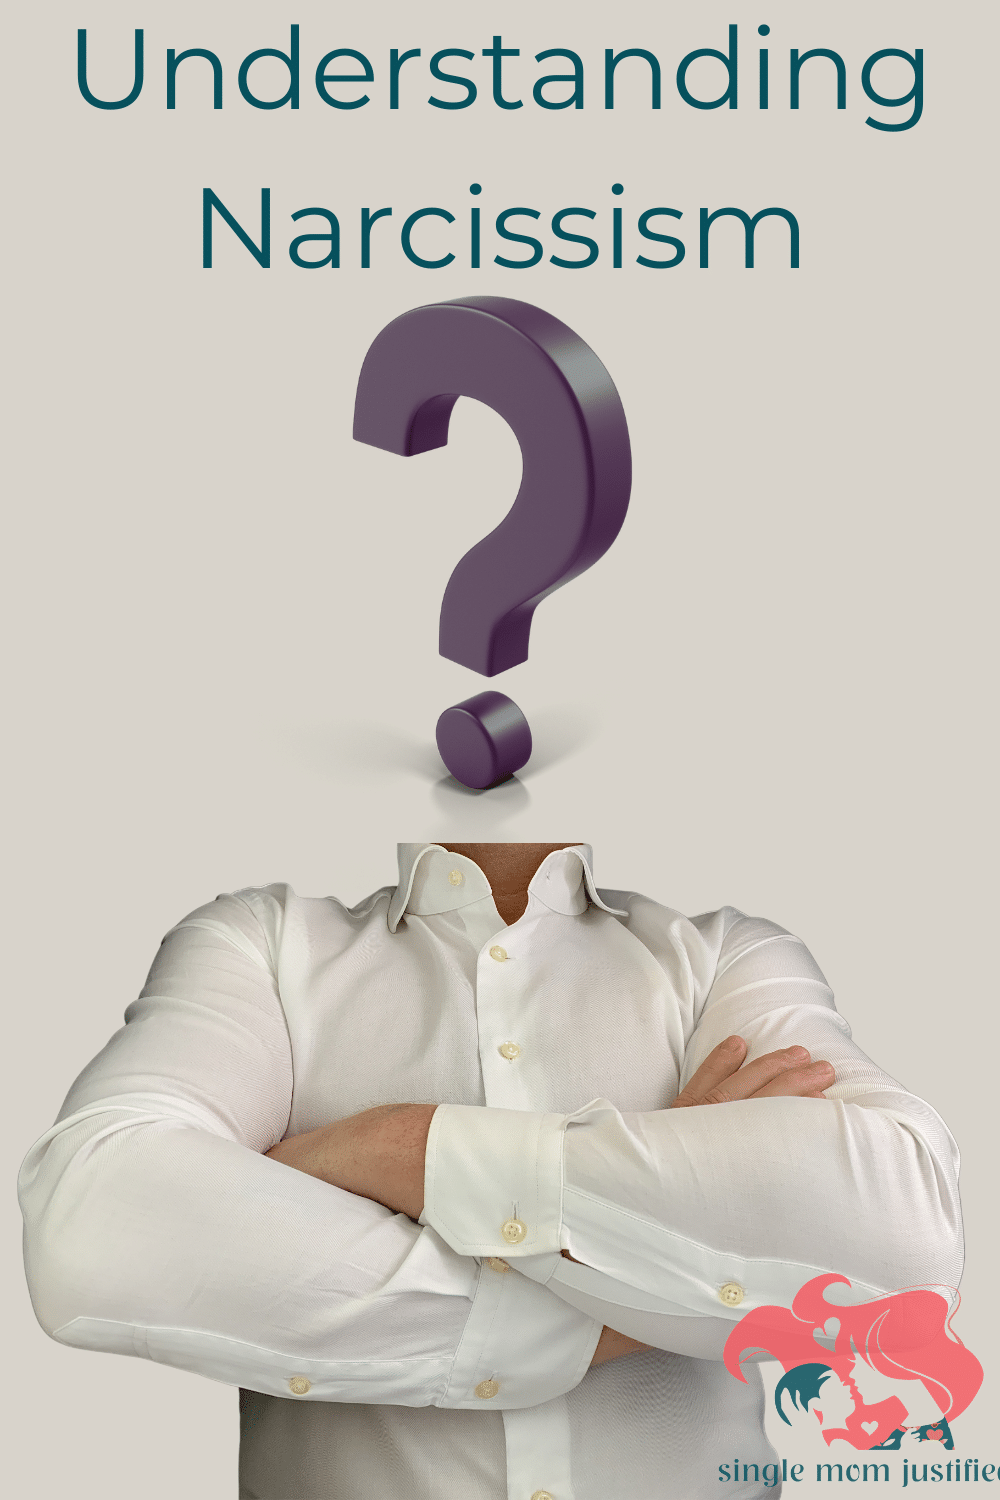 Understanding Narcissism to heal and prevent narcissistic abuse